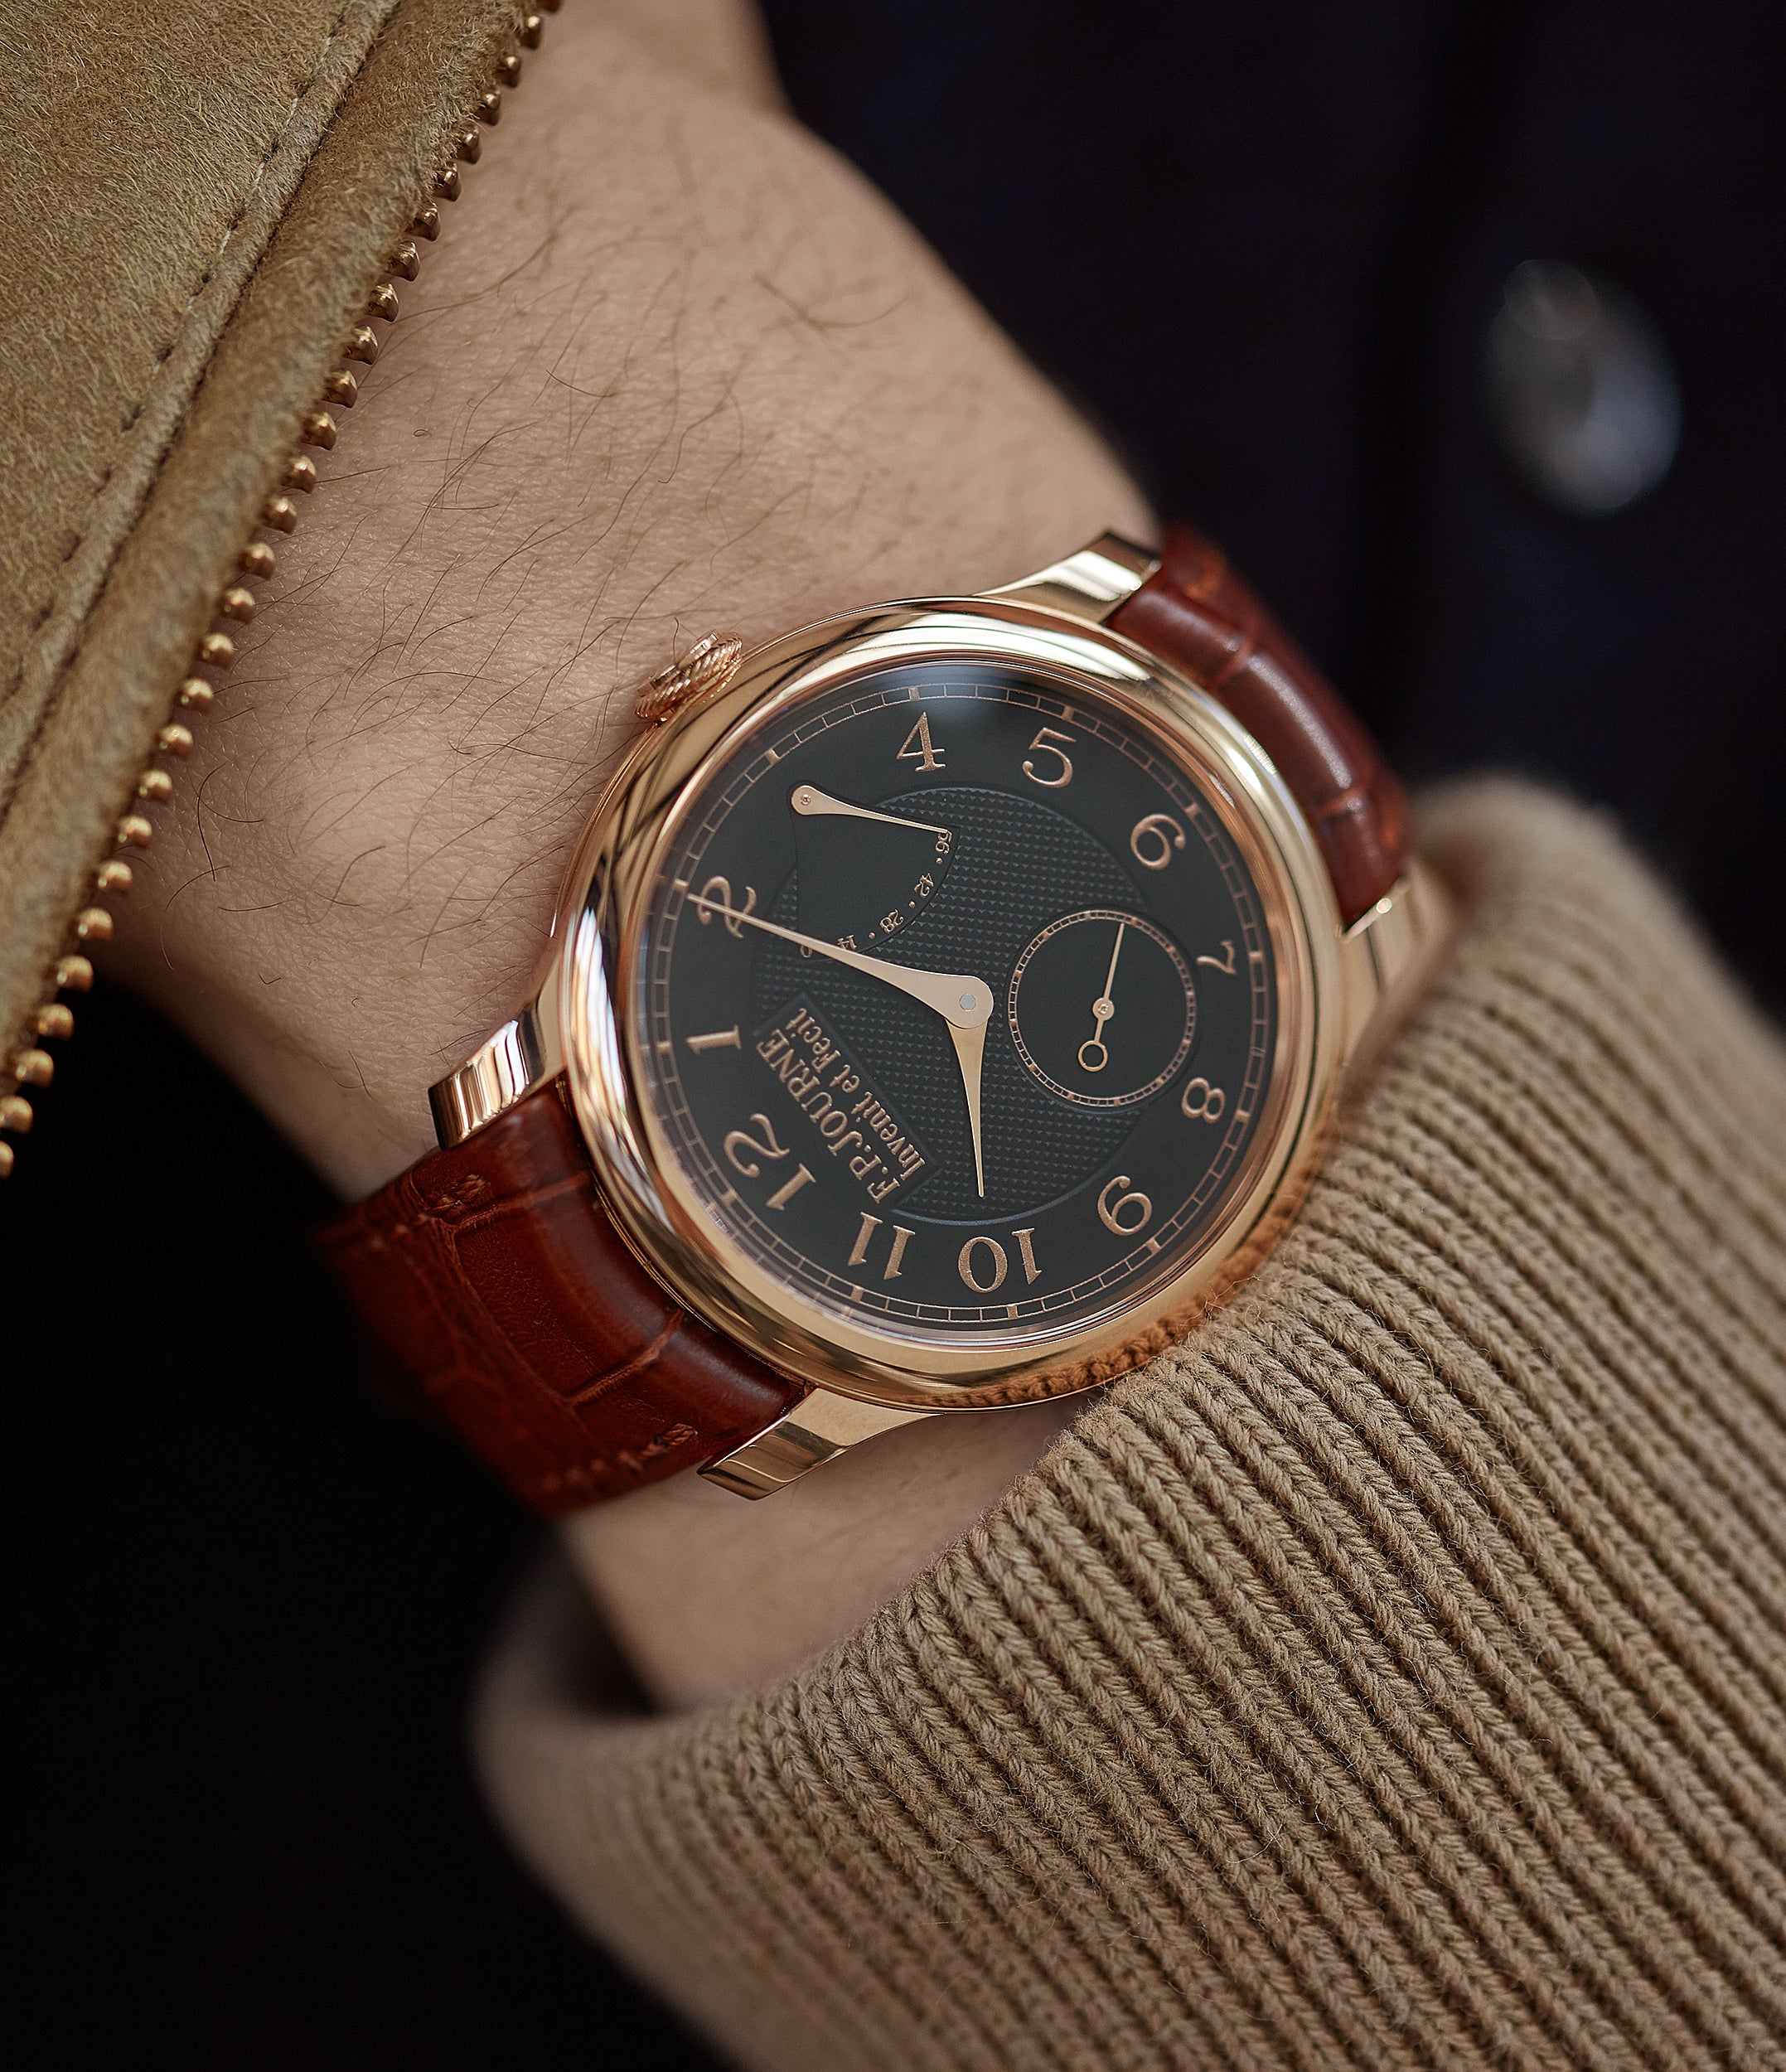 on the wrist F. P. Journe Boutique Edition Chronometre Souverain red gold black dial rare watch independent watchmaker for sale online at A Collected Man London UK specialist of rare watches